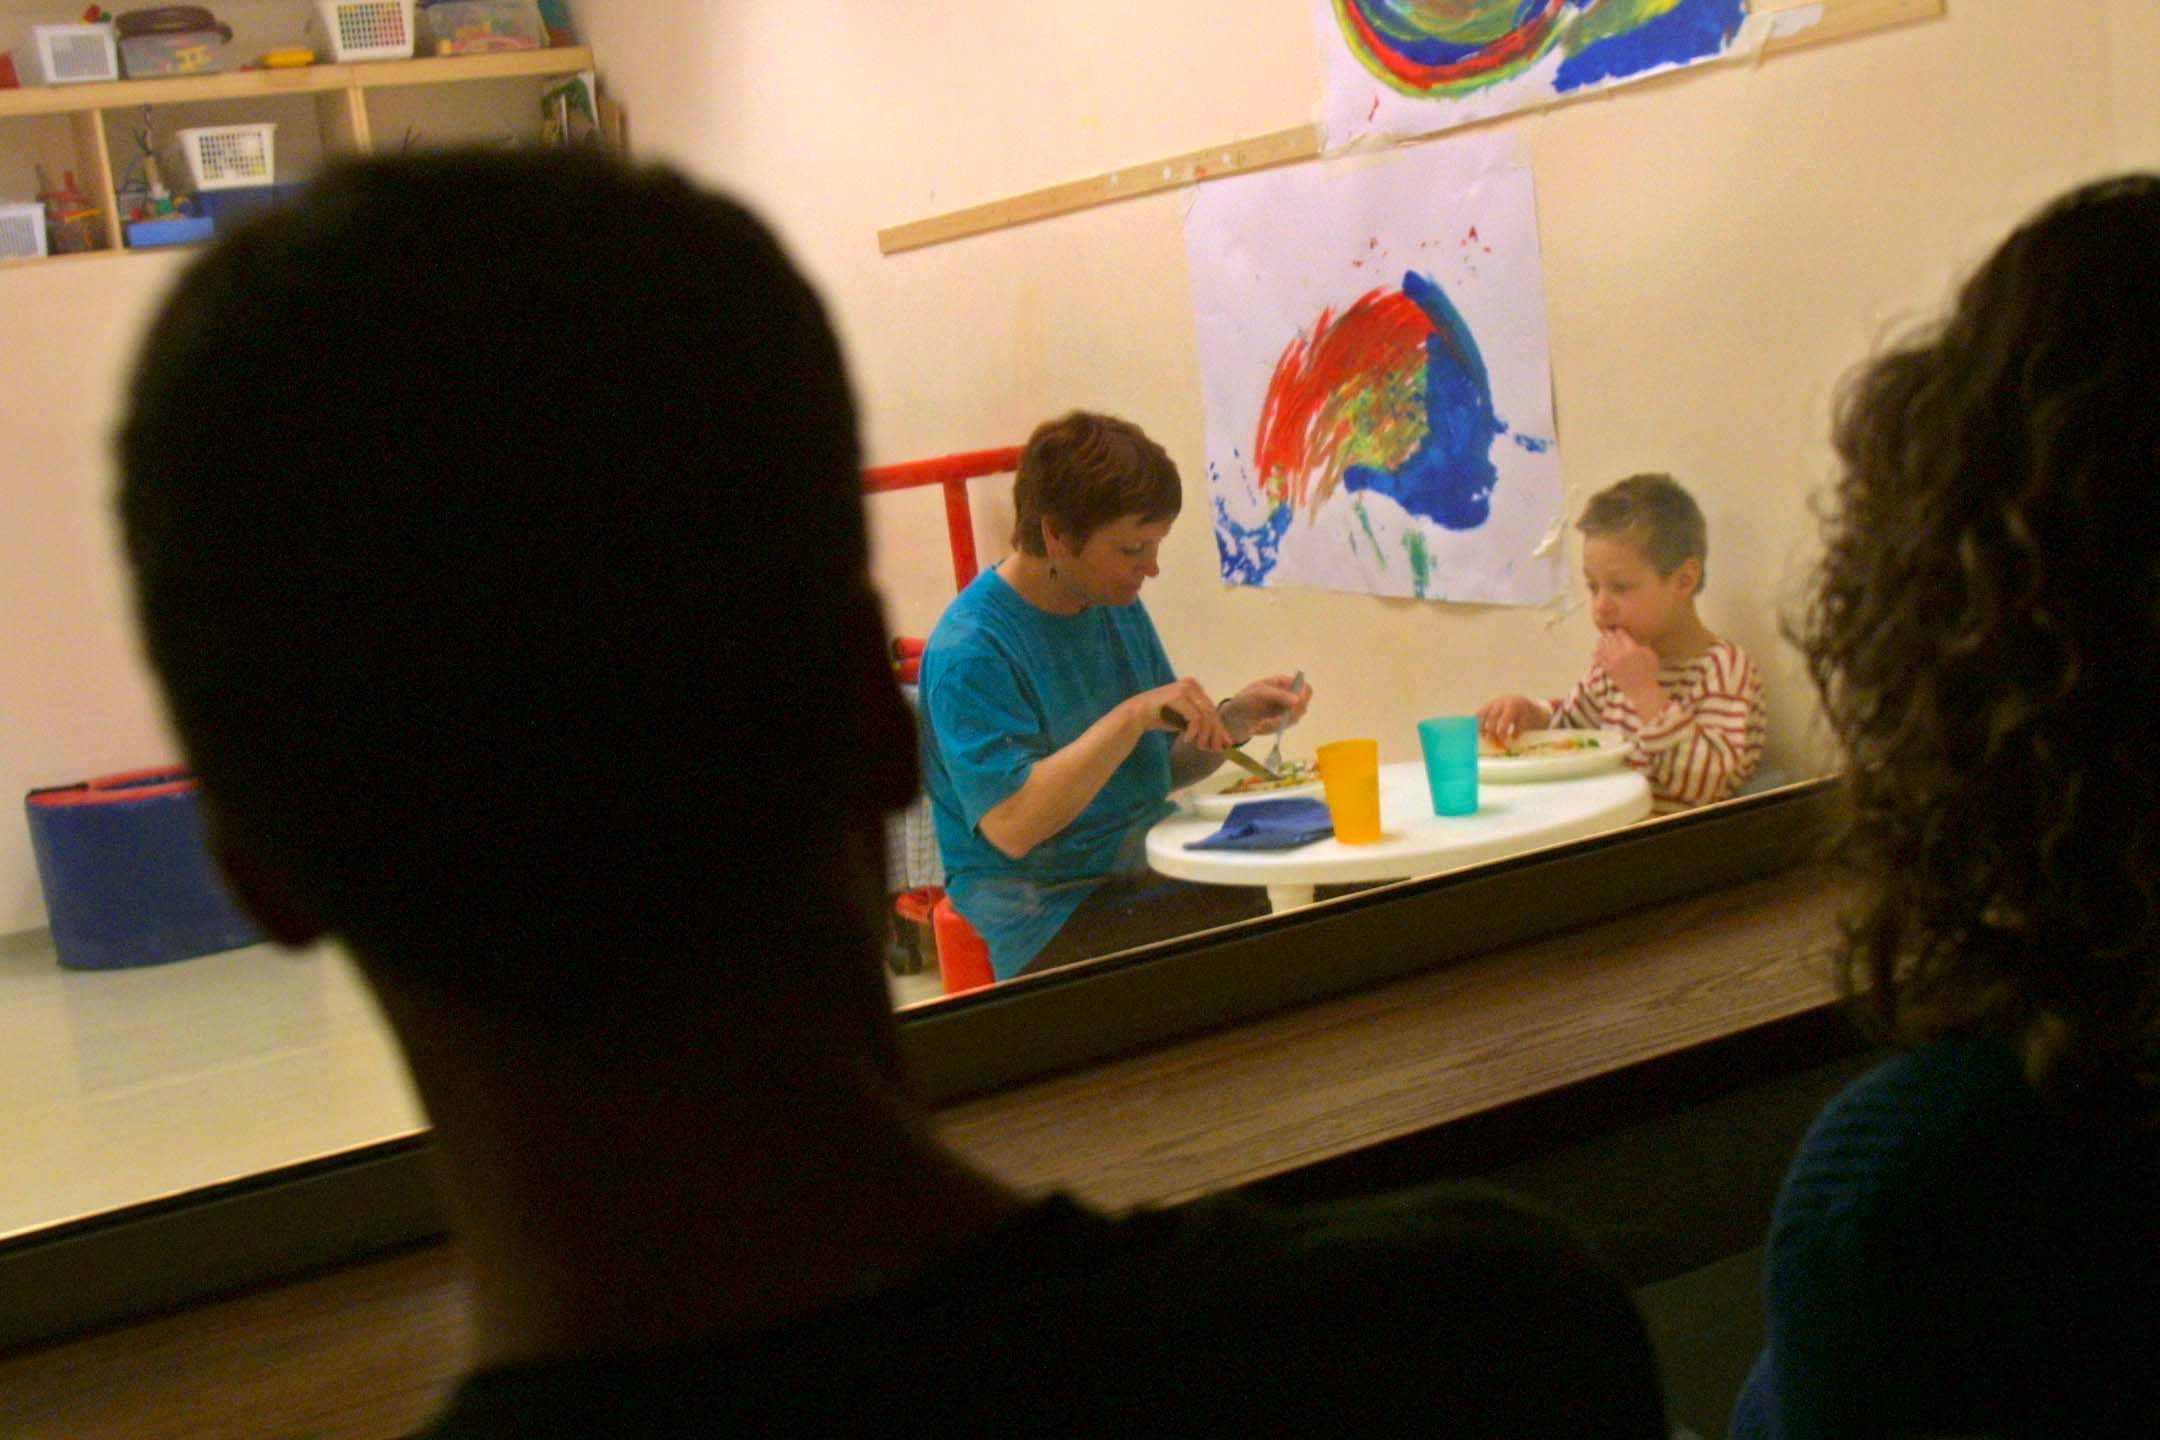 A four-year-old autistic boy learns at the Mifne Center for autistic children in Rosh Pina, Israel.